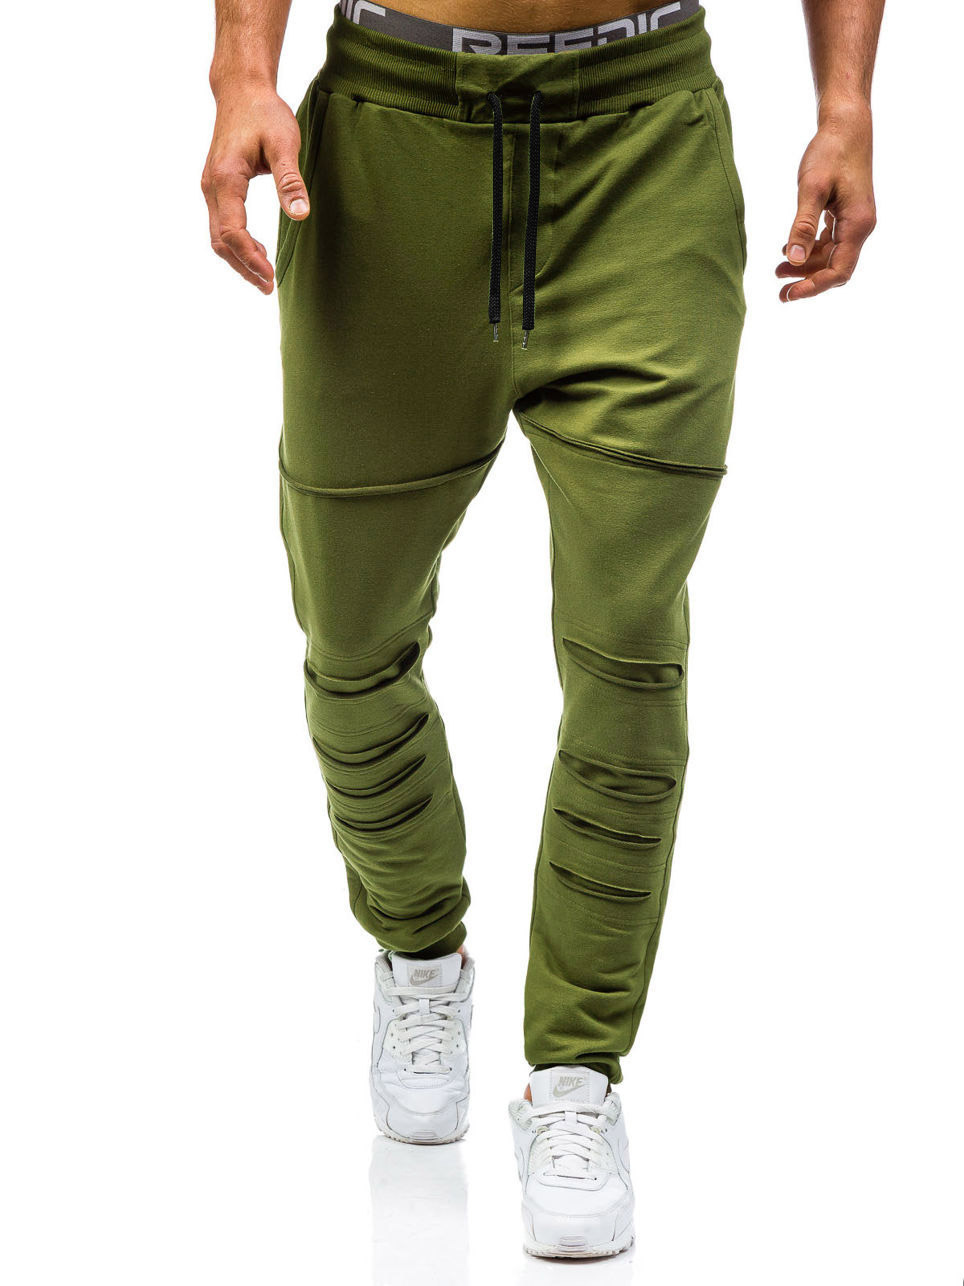 AliExpress Autumn Clothing New Style Men With Holes Double Pocket Solid Color Casual Pants Large Size Beam Leg Sports Harem Pant